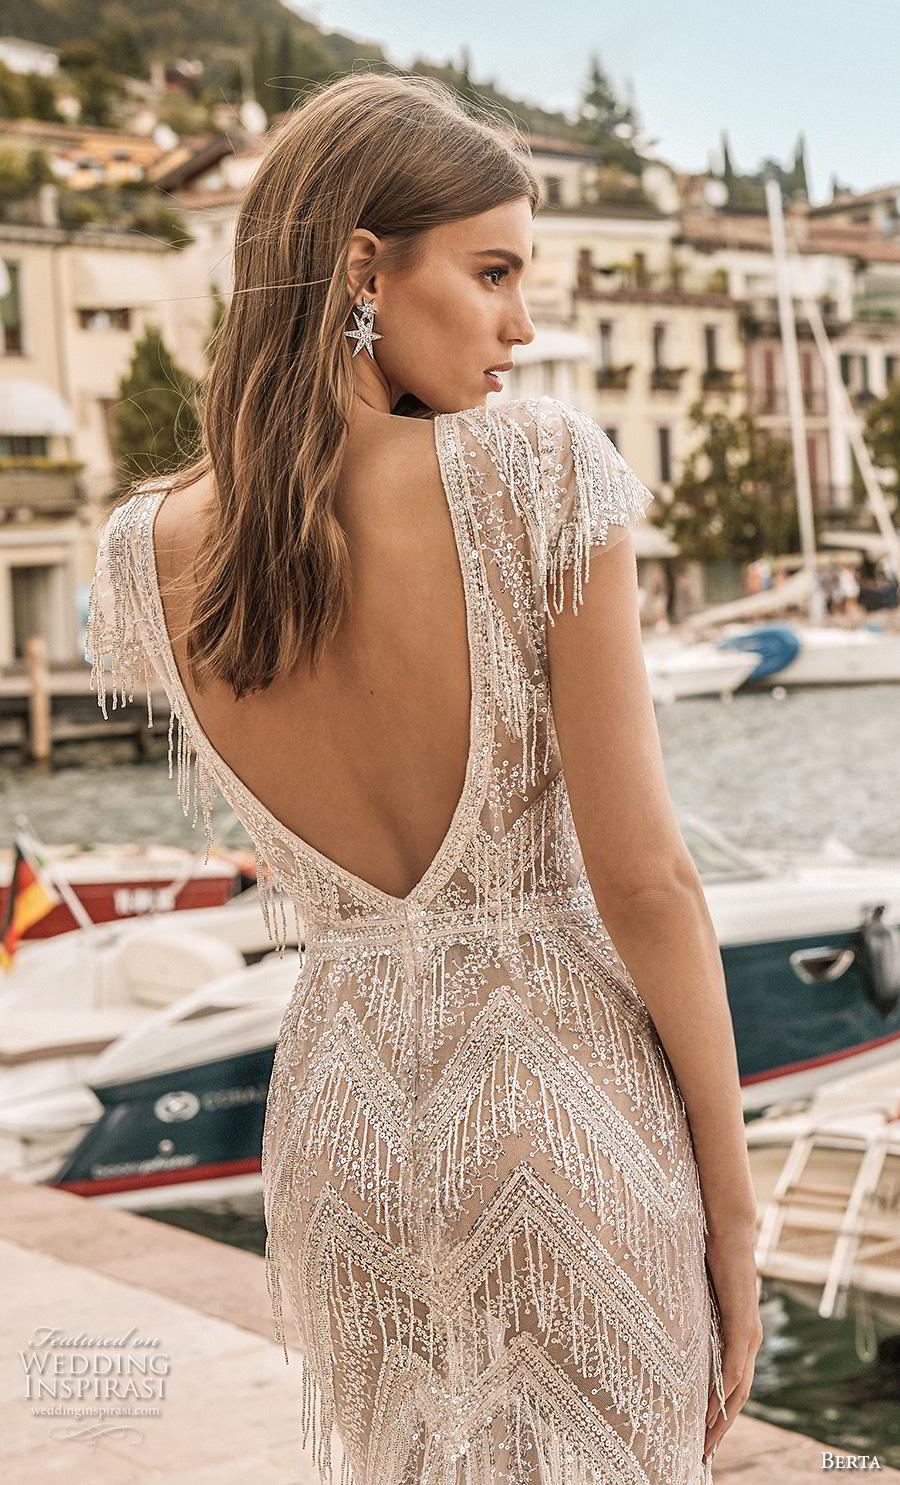 berta 2019 privee bridal cap sleeves deep v neck full embellishment glitzy elegant fit and flare wedding dress backless v back medium train (10) zbv